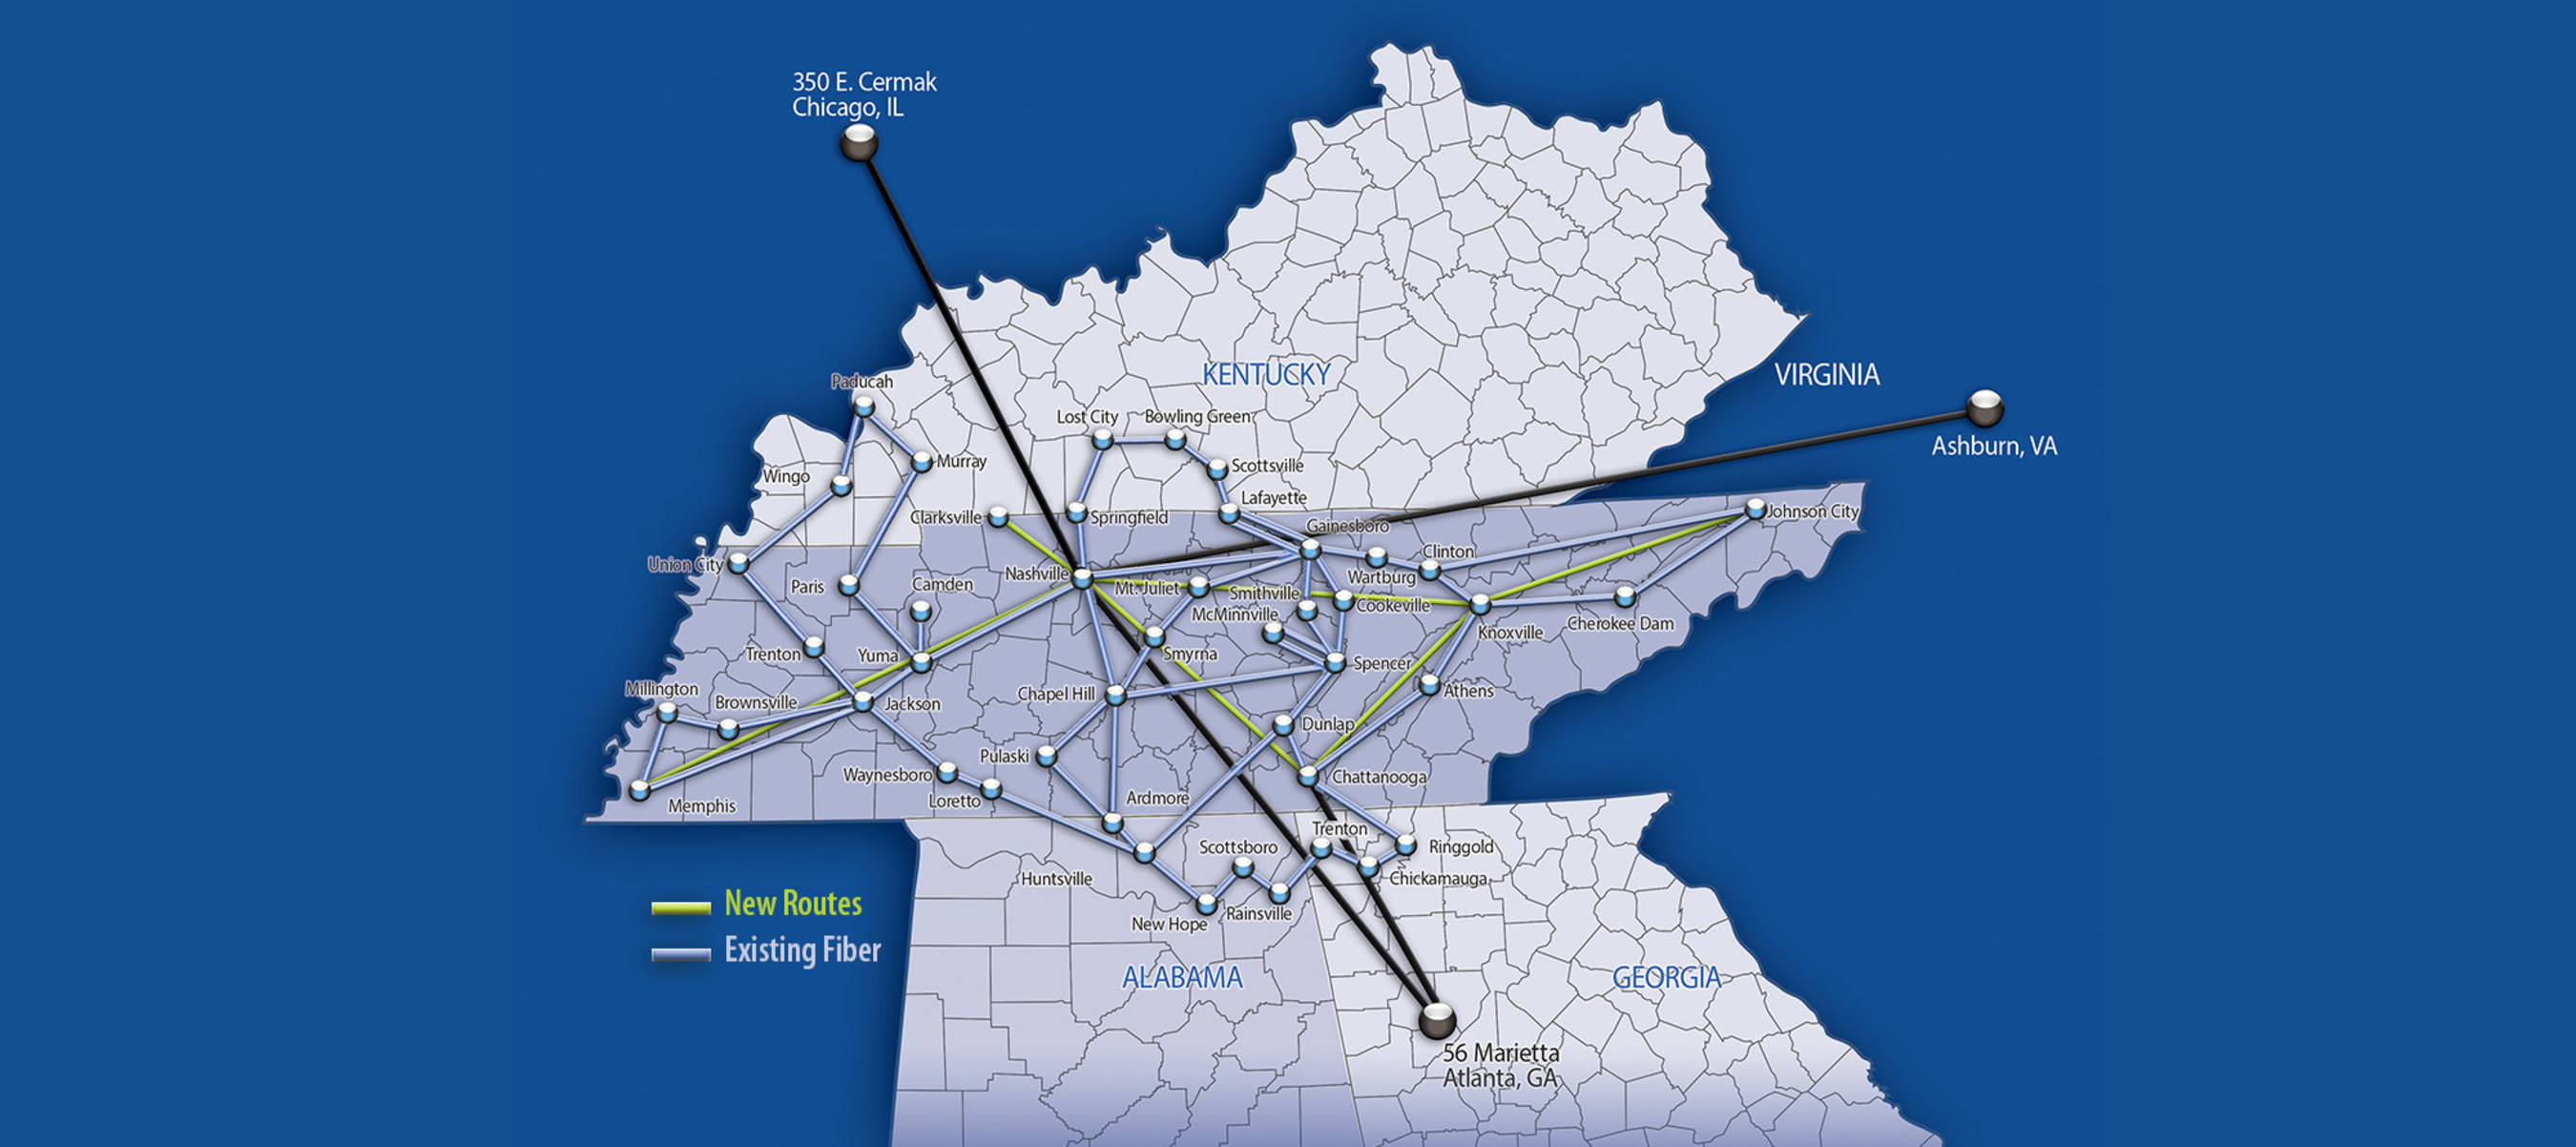 iRis Plans Underway to Construct Key Routes in Tennessee